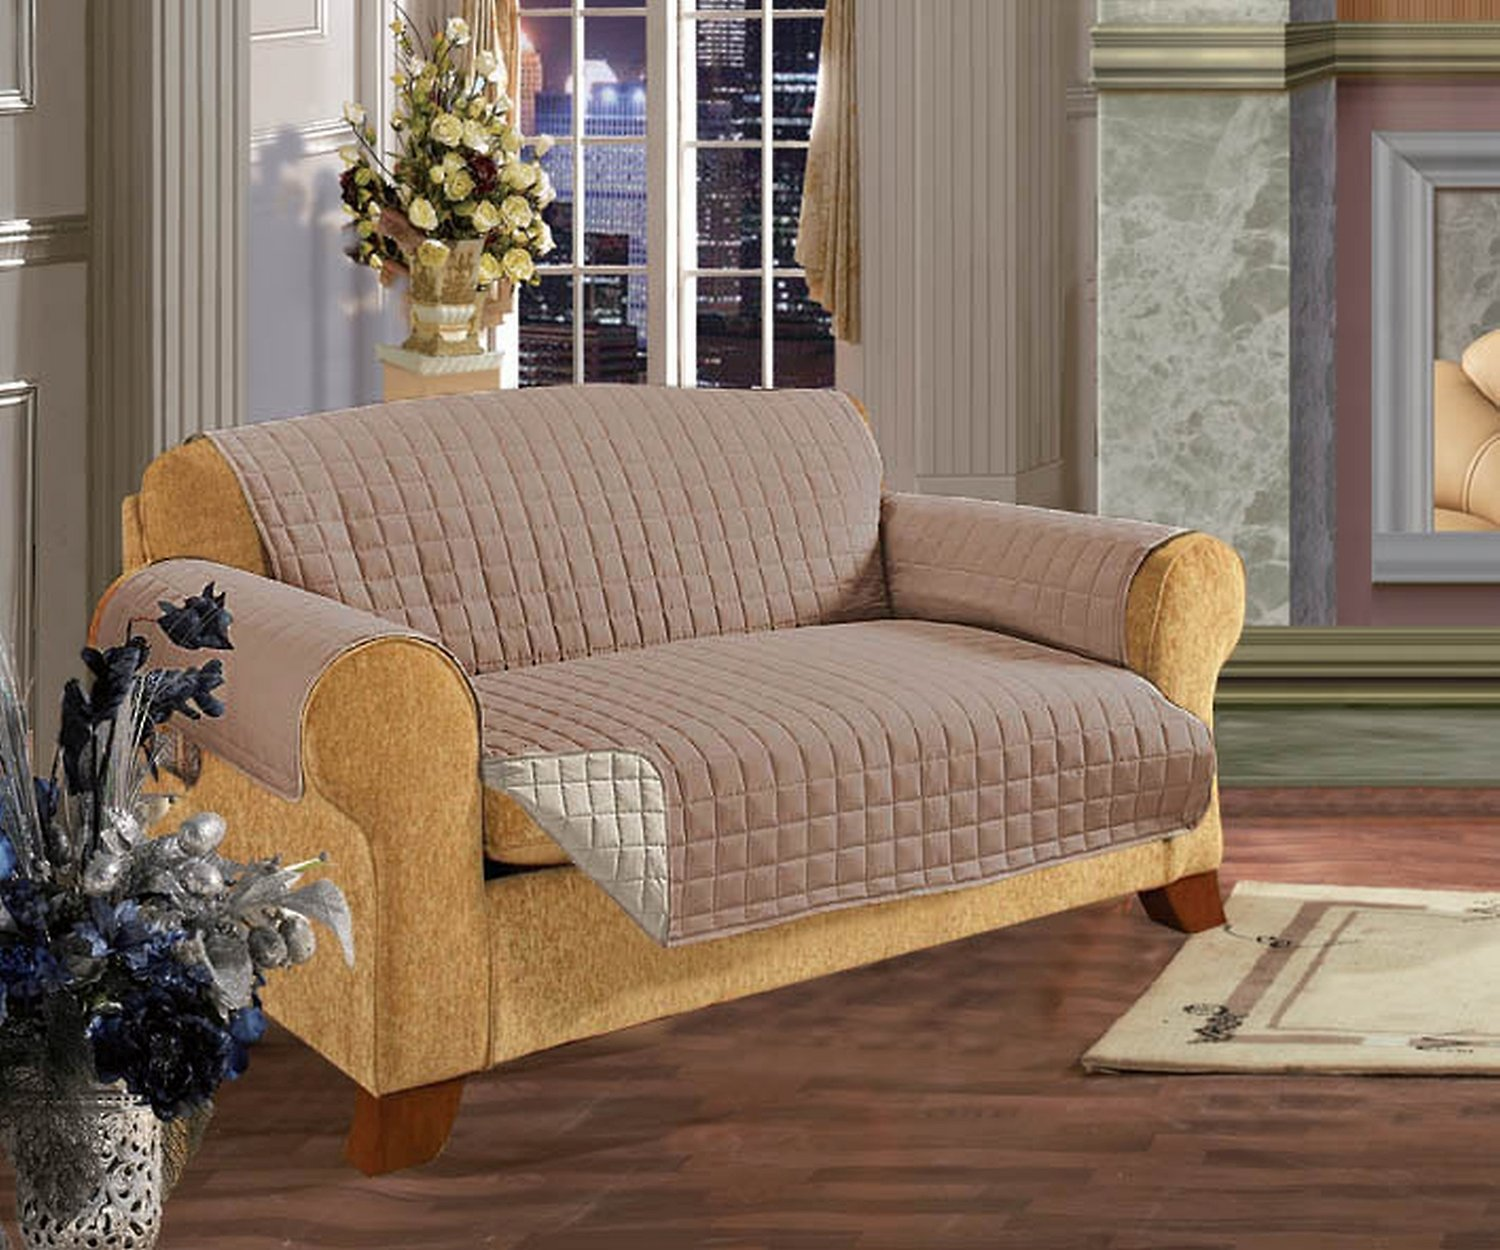 Elegant Comfort Reversible Quilted Sofa Cover, Cream/Taupe